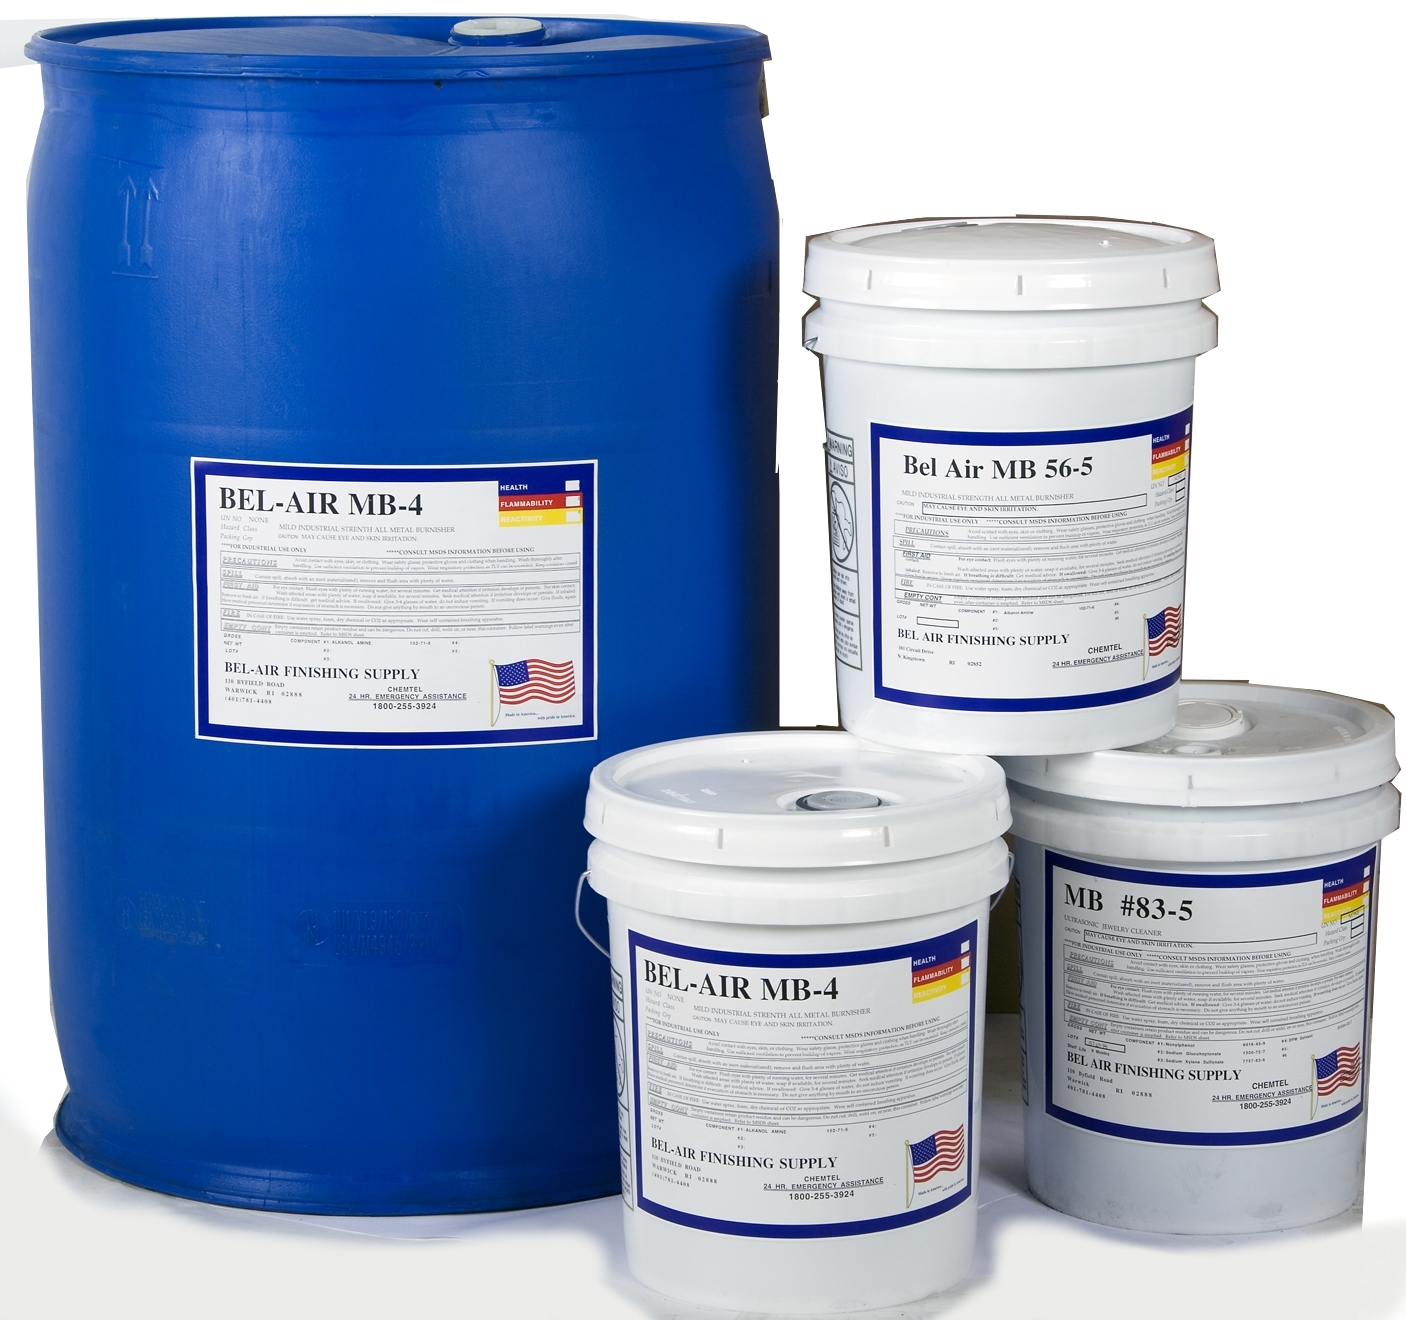 Compounds for cleaning, rust prevention, lubrication and overall brightness of parts